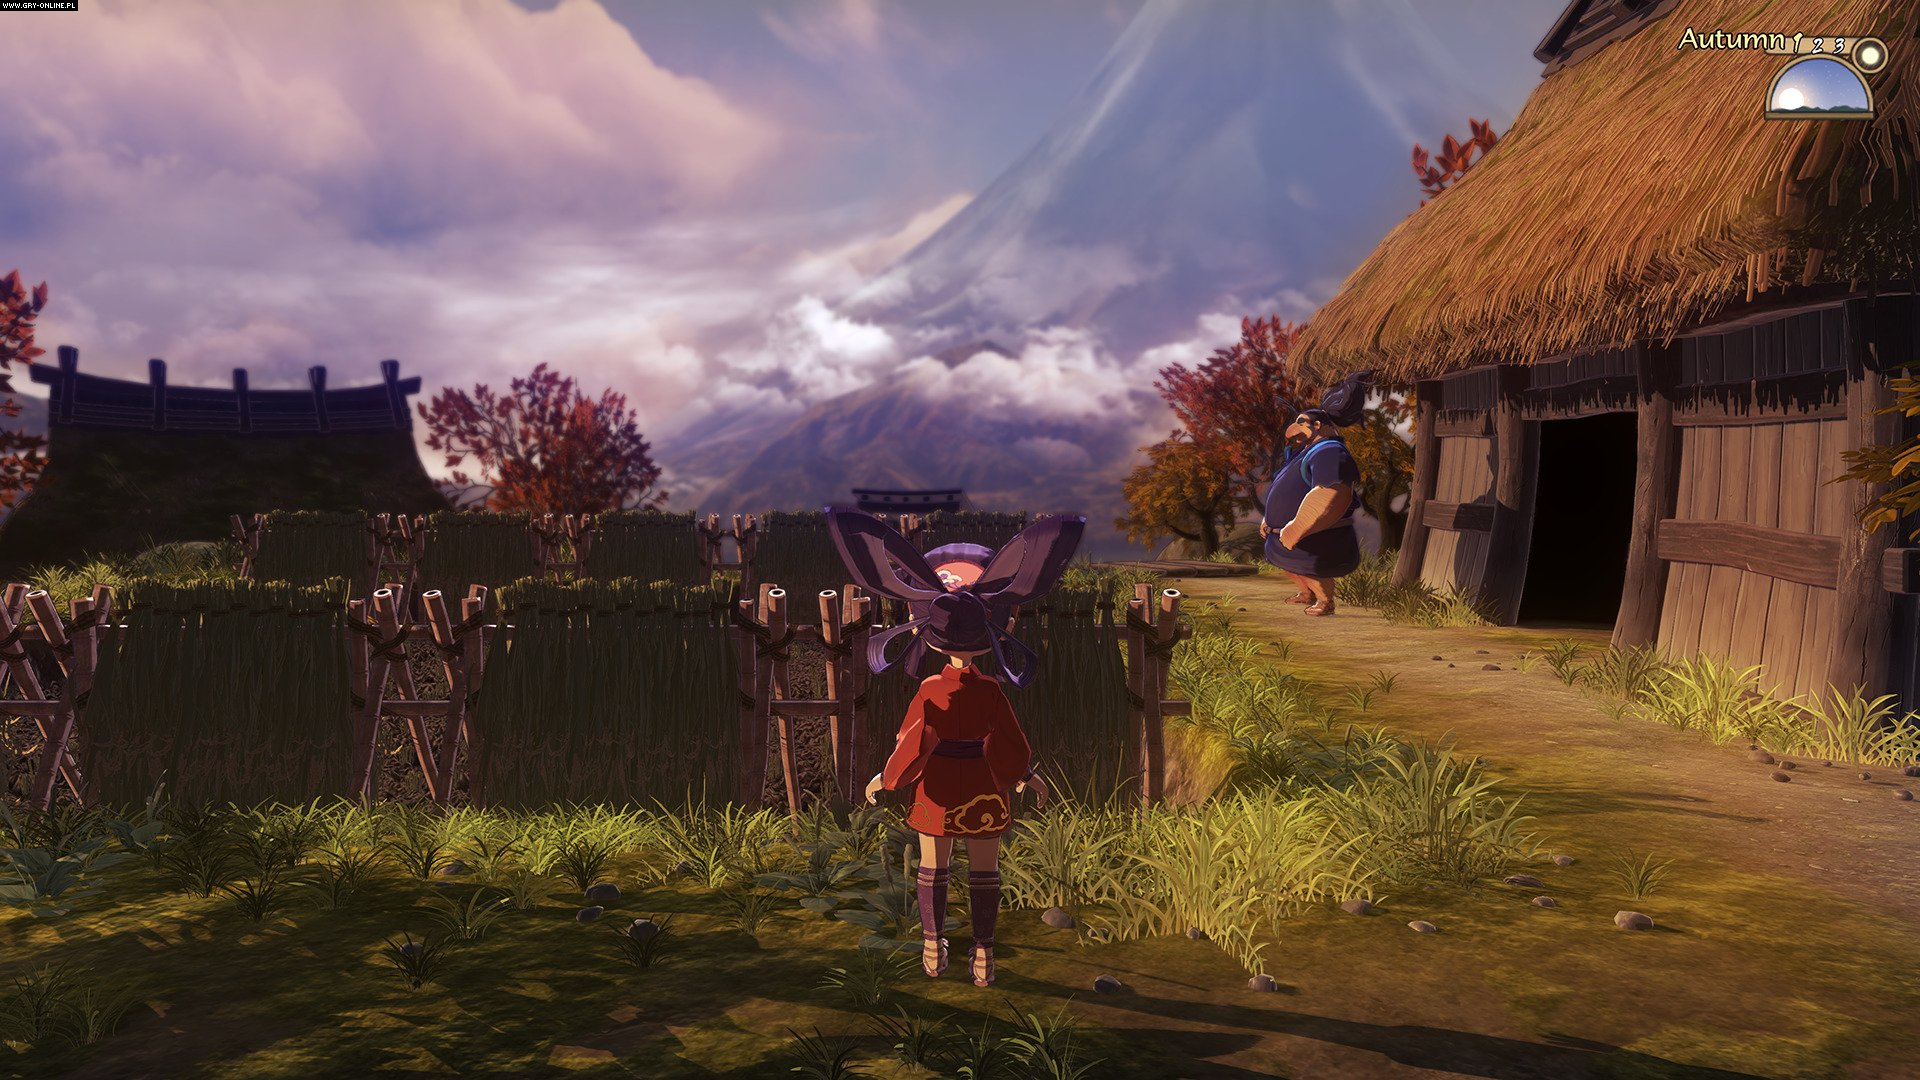 Sakuna: Of Rice and Ruin PC, PS4 Gry Screen 13/28, Edelweiss, XSEED Games